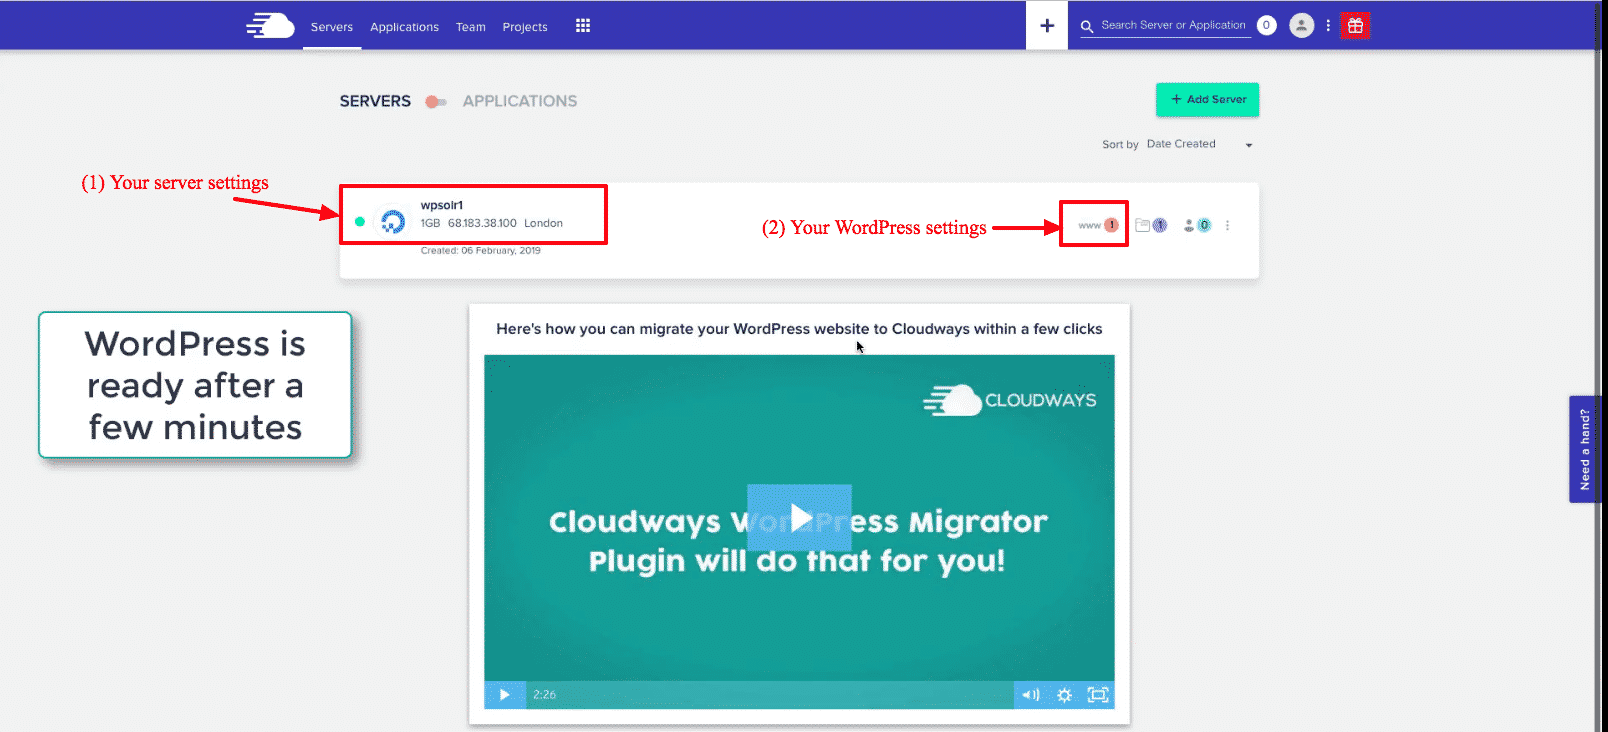 Cloudways WordPress: application is ready